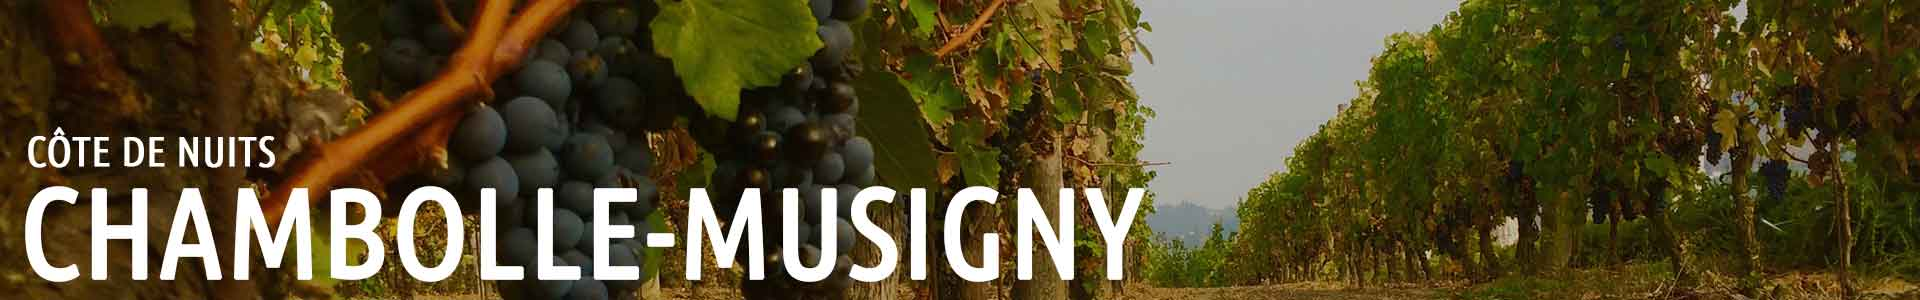 Pleasure Wine: Chambolle-Musigny Wines